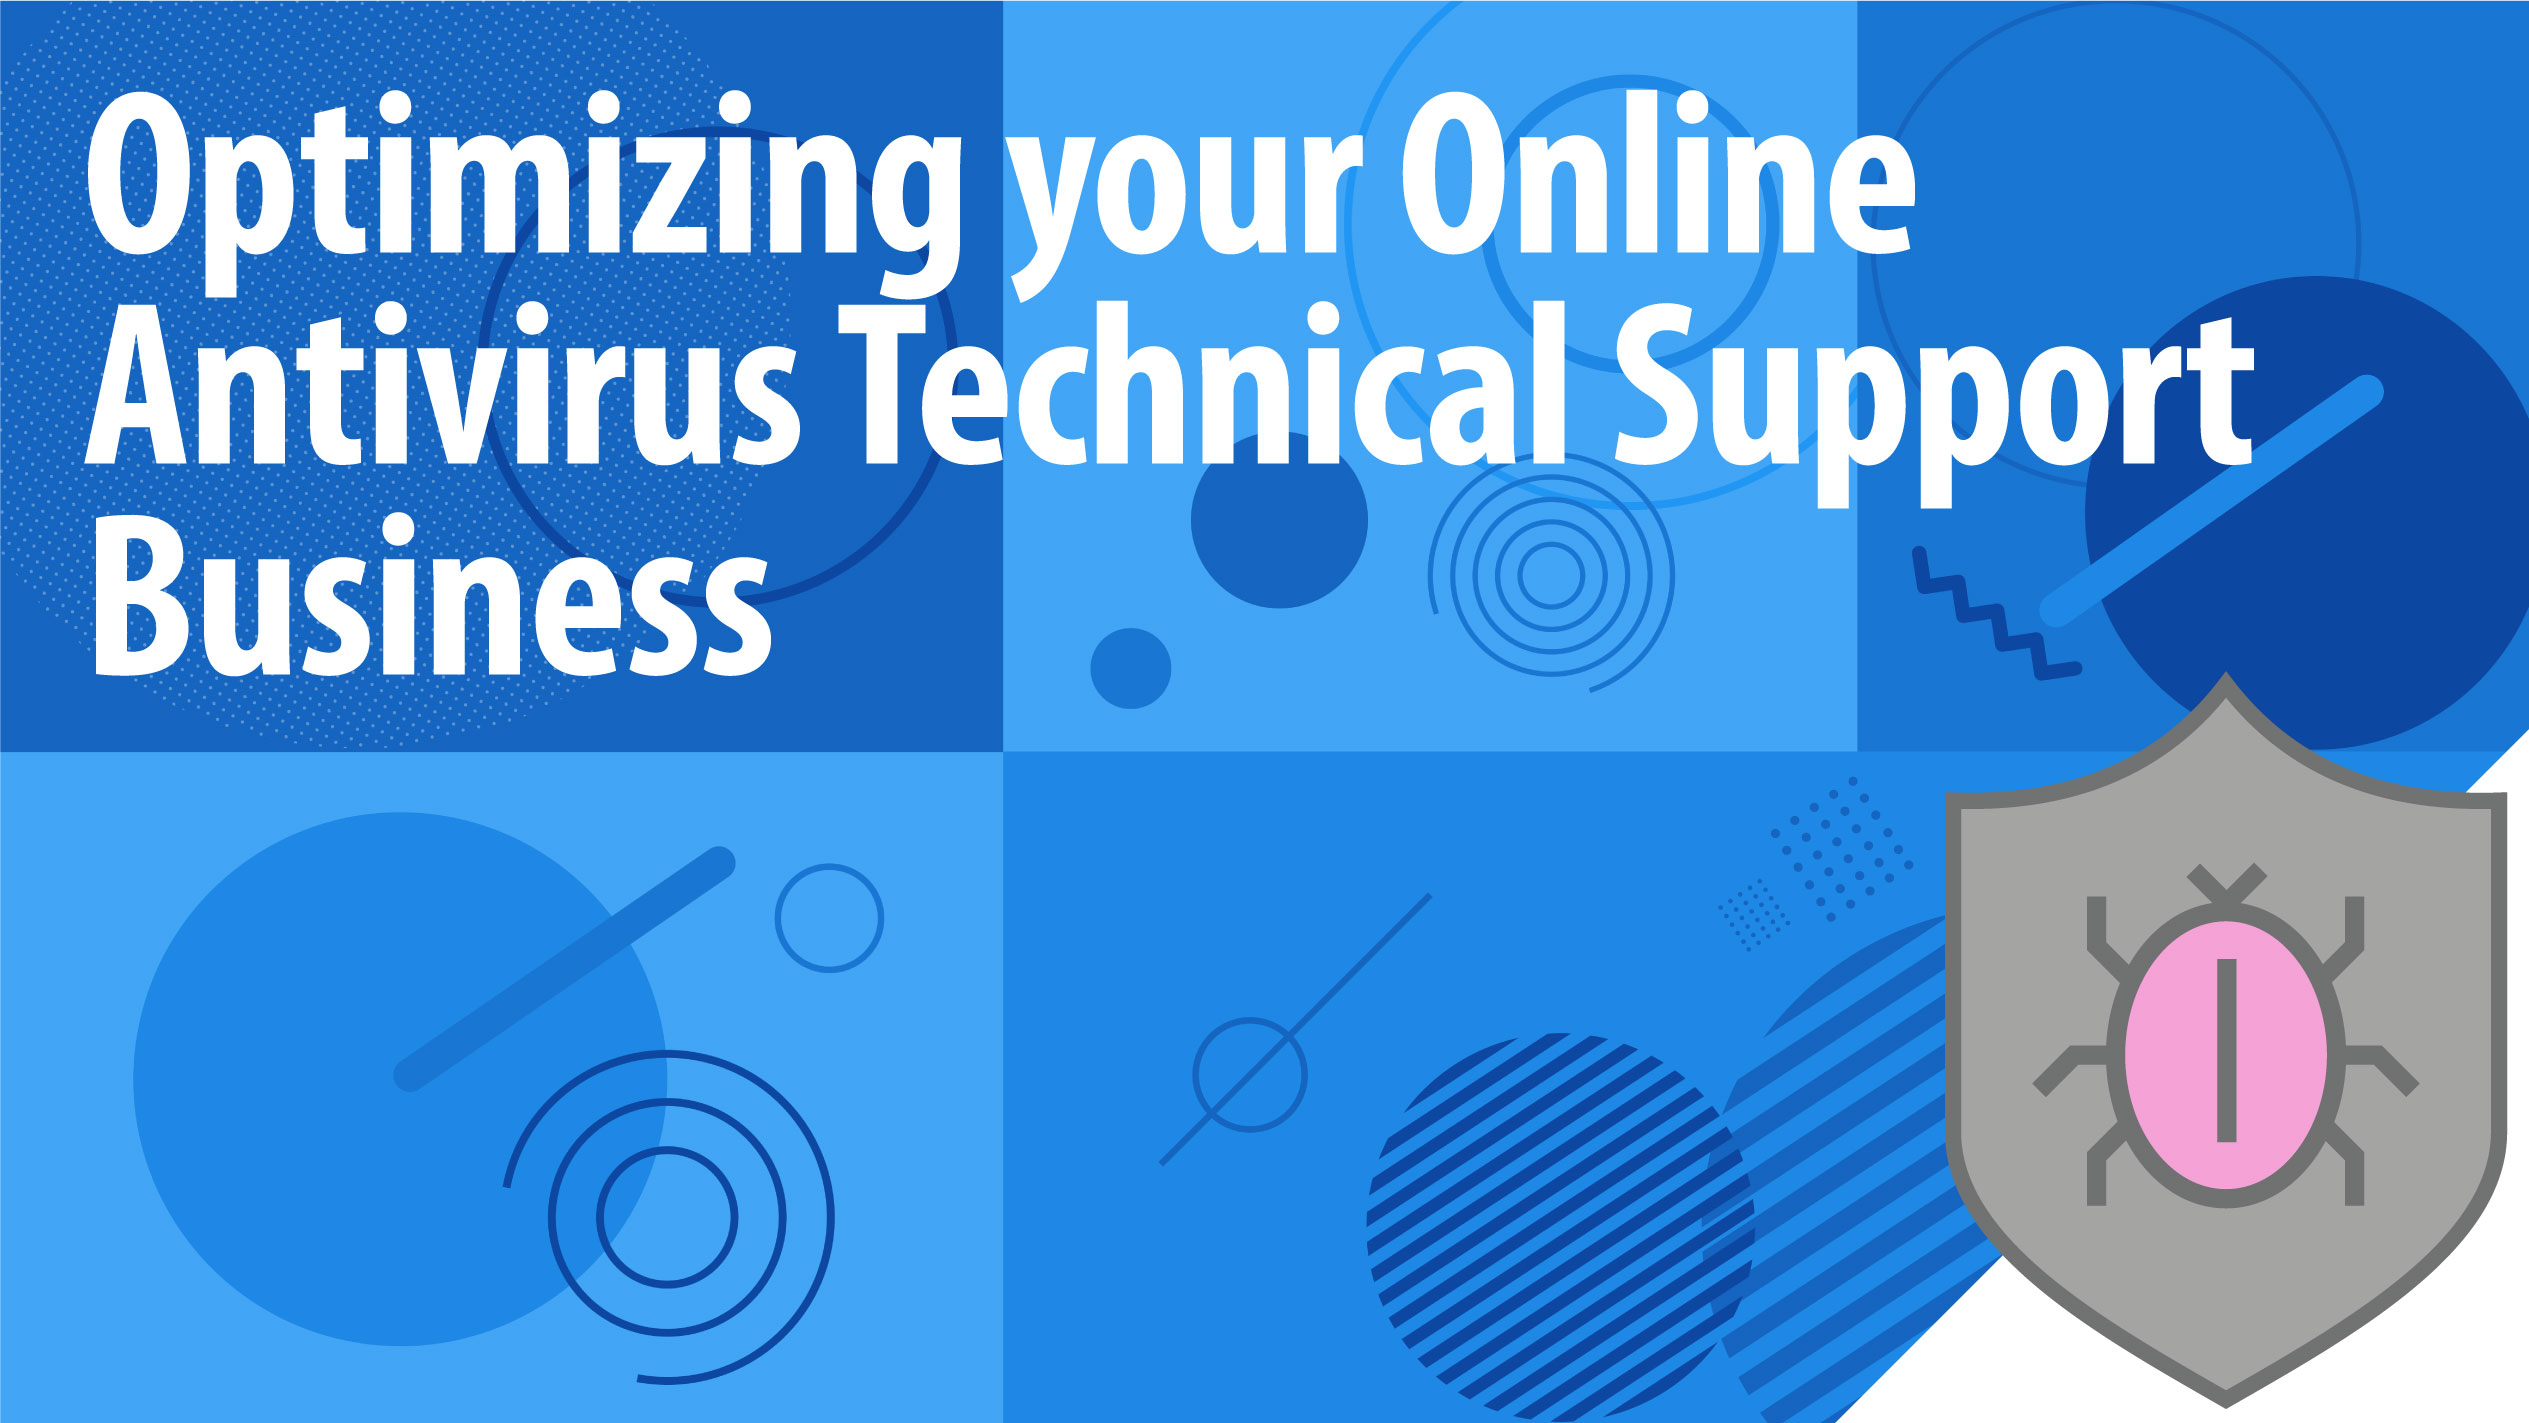 Optimizing your Online Antivirus Technical Support Business